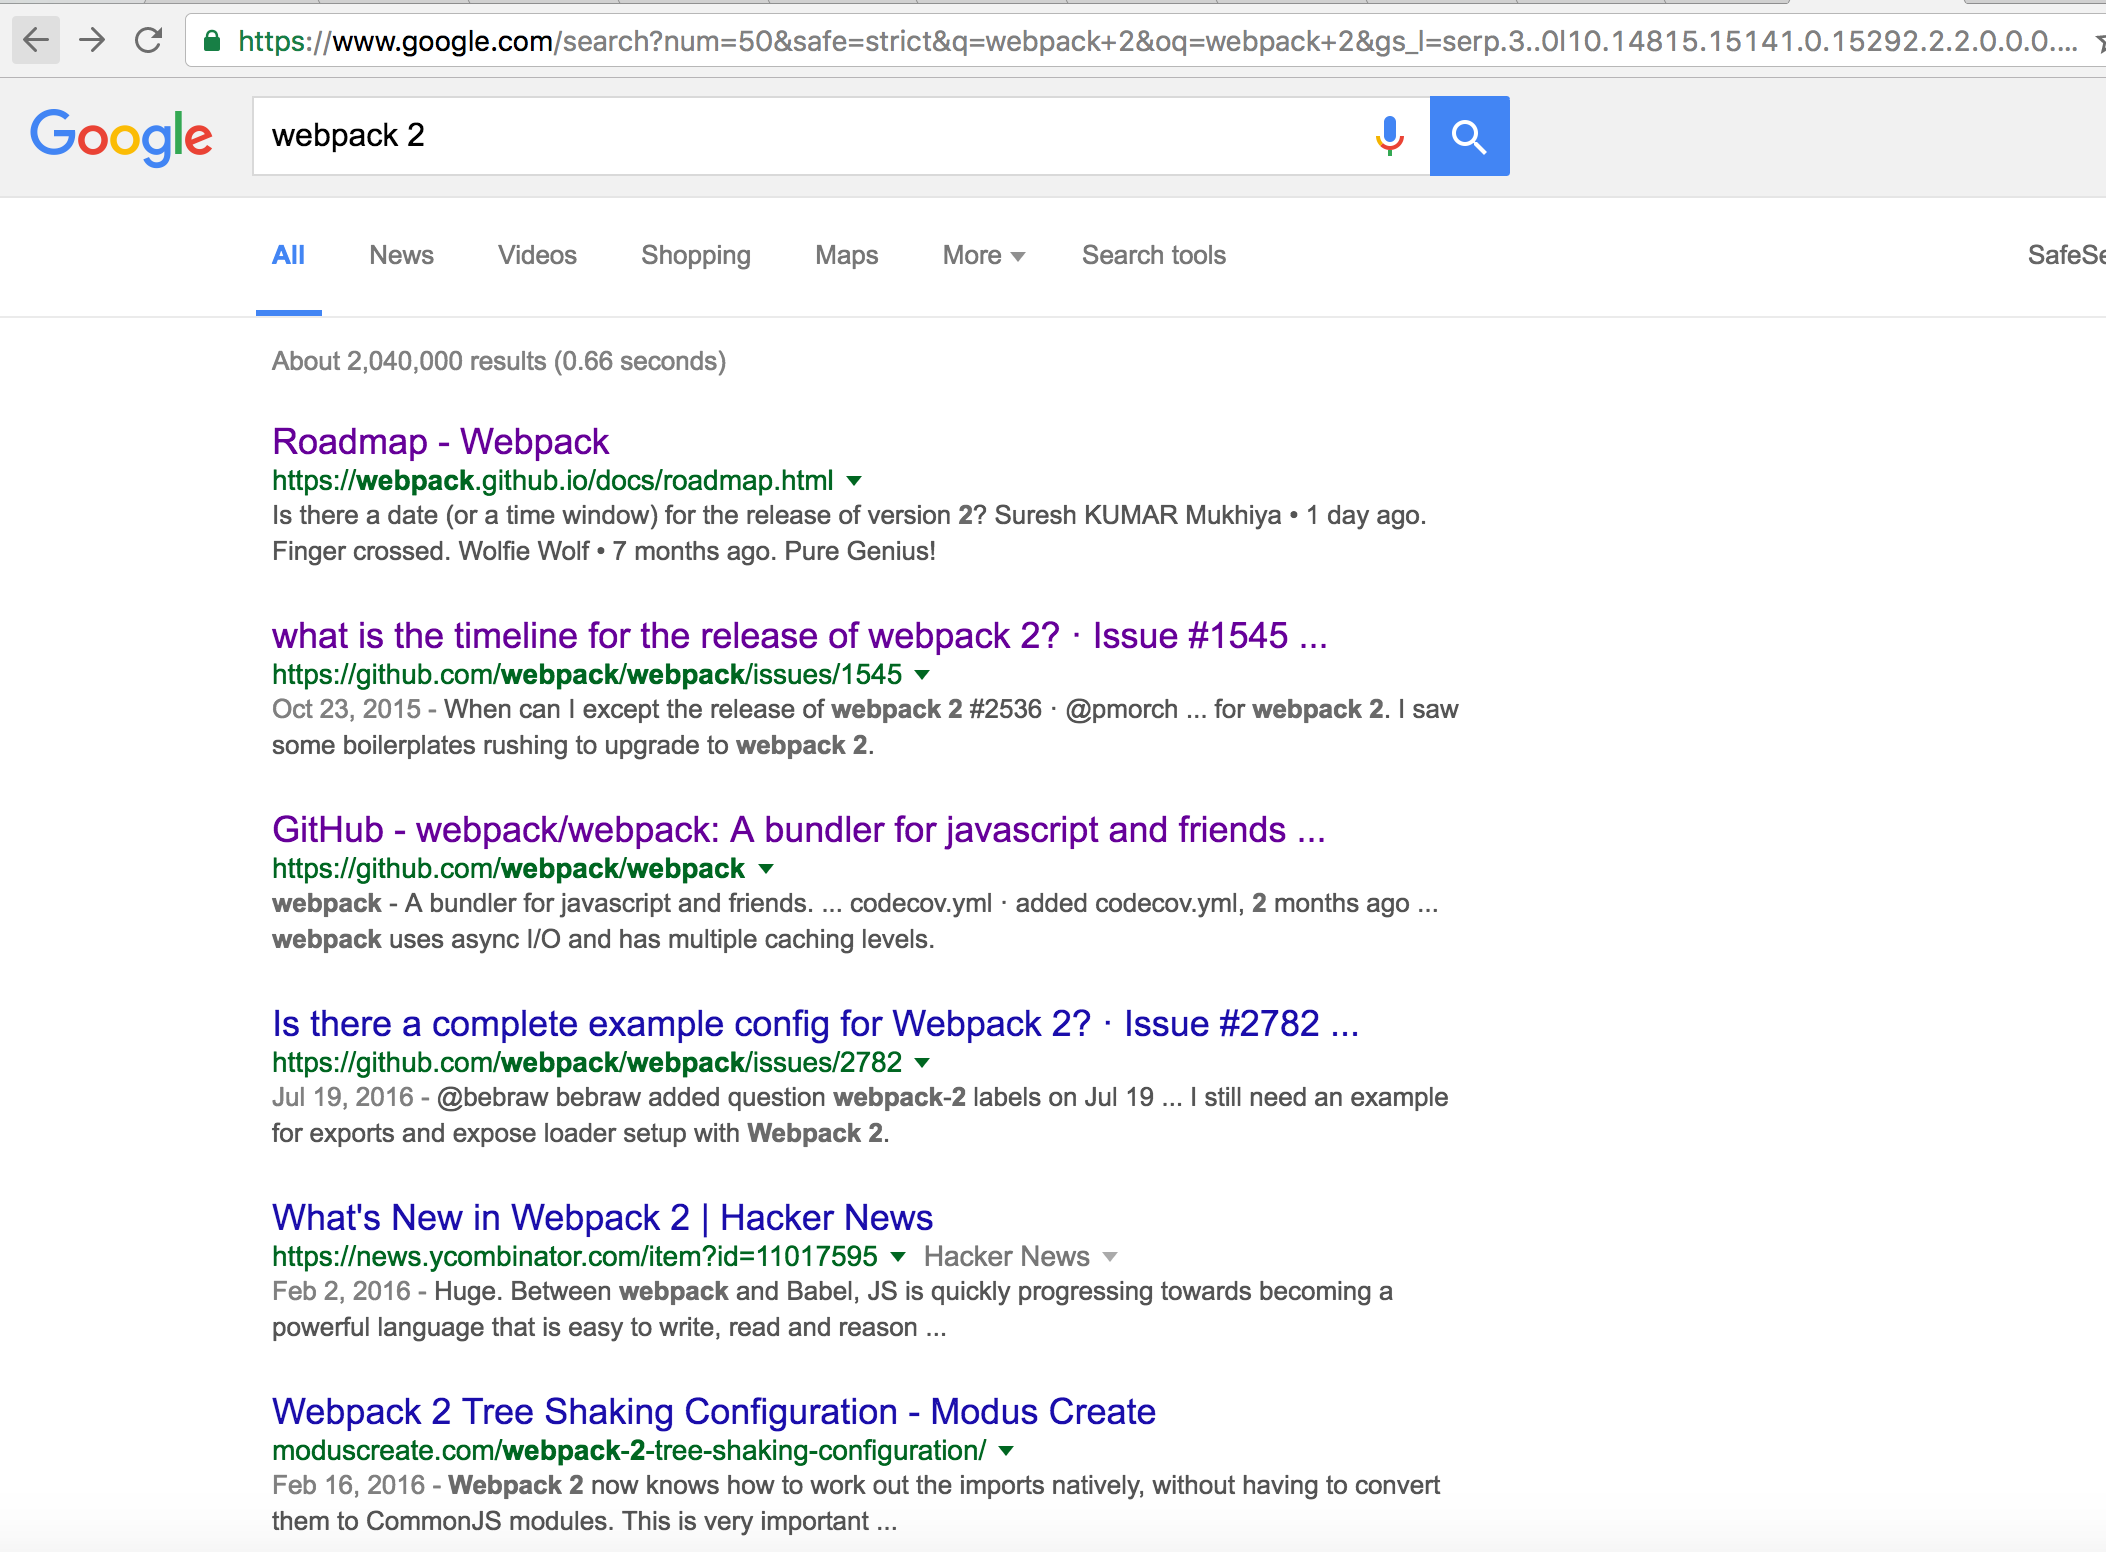 search weppack 2 on google